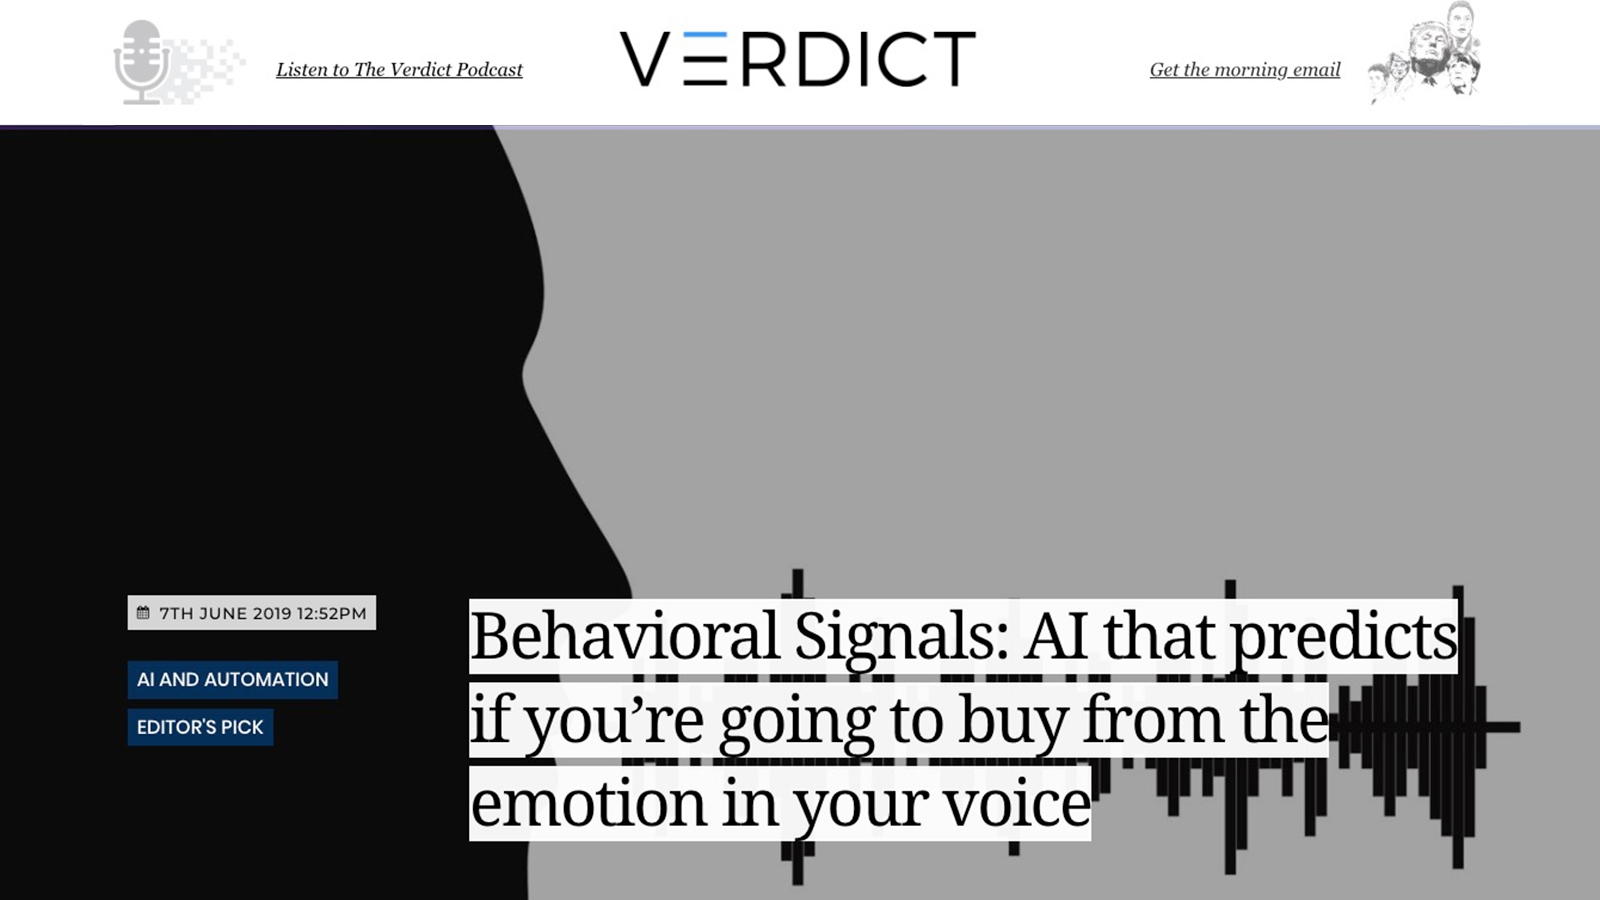 Behavioral Signals: AI that predicts if you're going to buy from the emotion in your voice